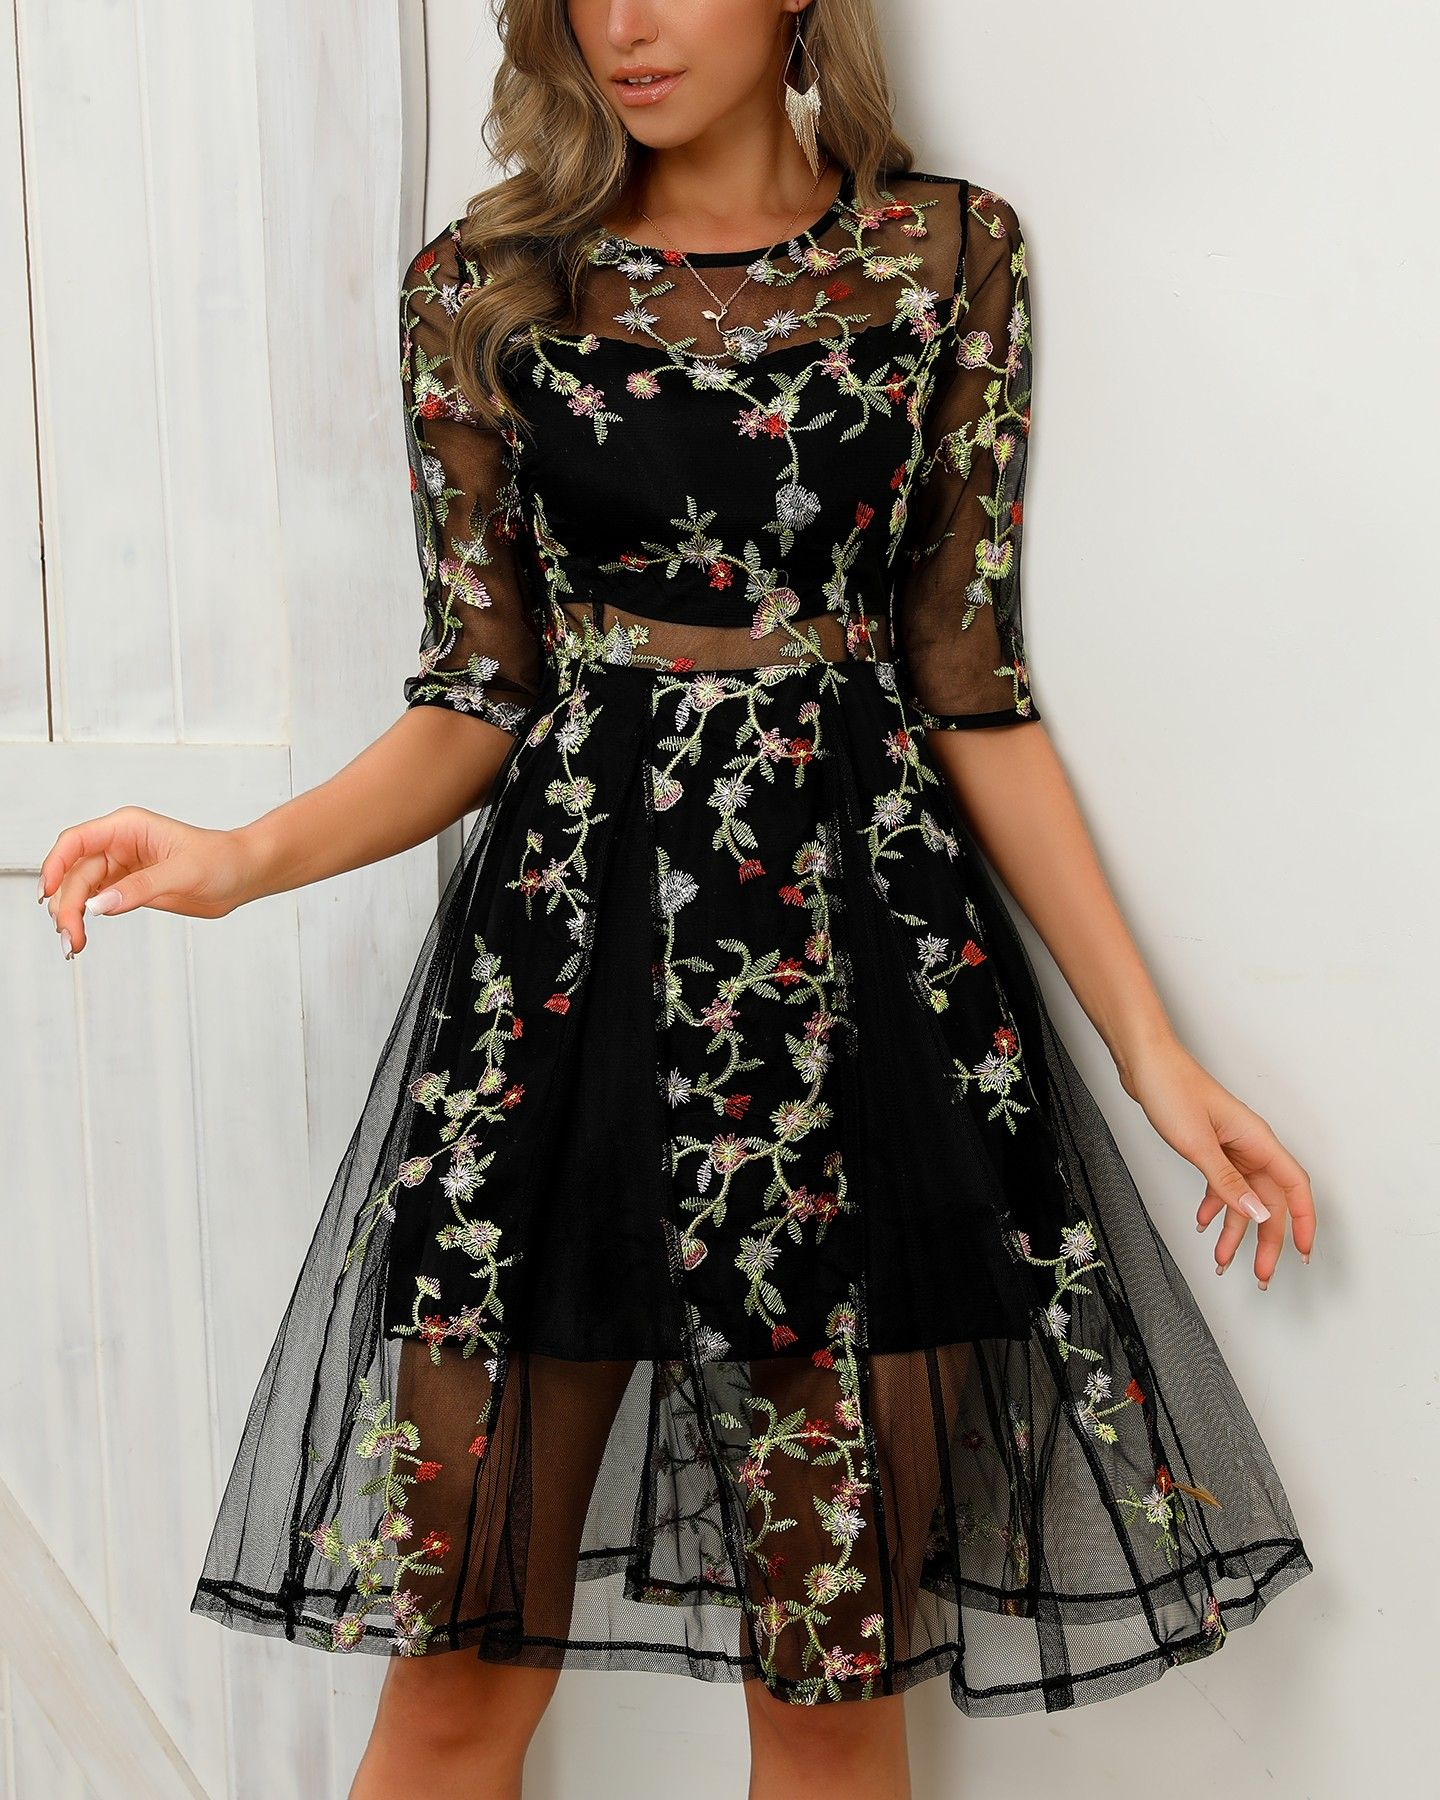 Sheer Mesh Overlay Floral Embroidery Dress Sheer Overlay Dress Floral Embroidery Dress Embroidery Dress [ 1800 x 1440 Pixel ]